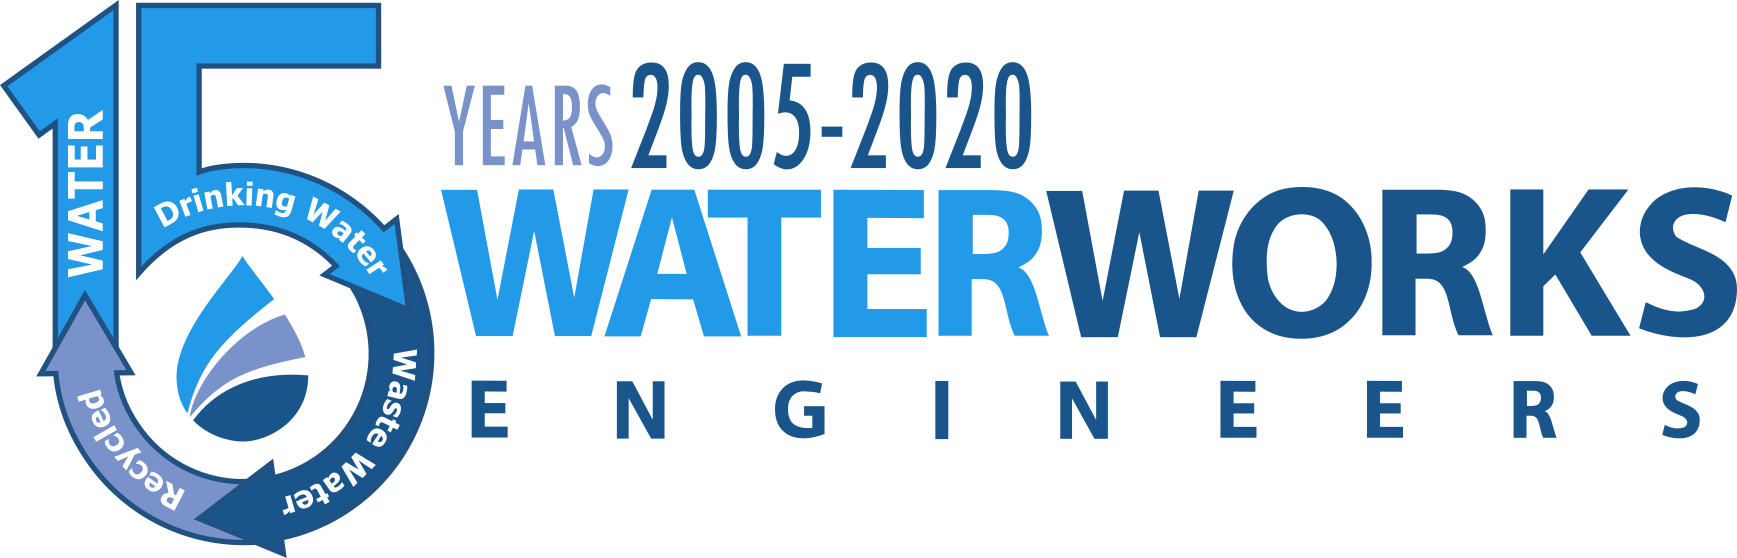 WaterWorks Engineers